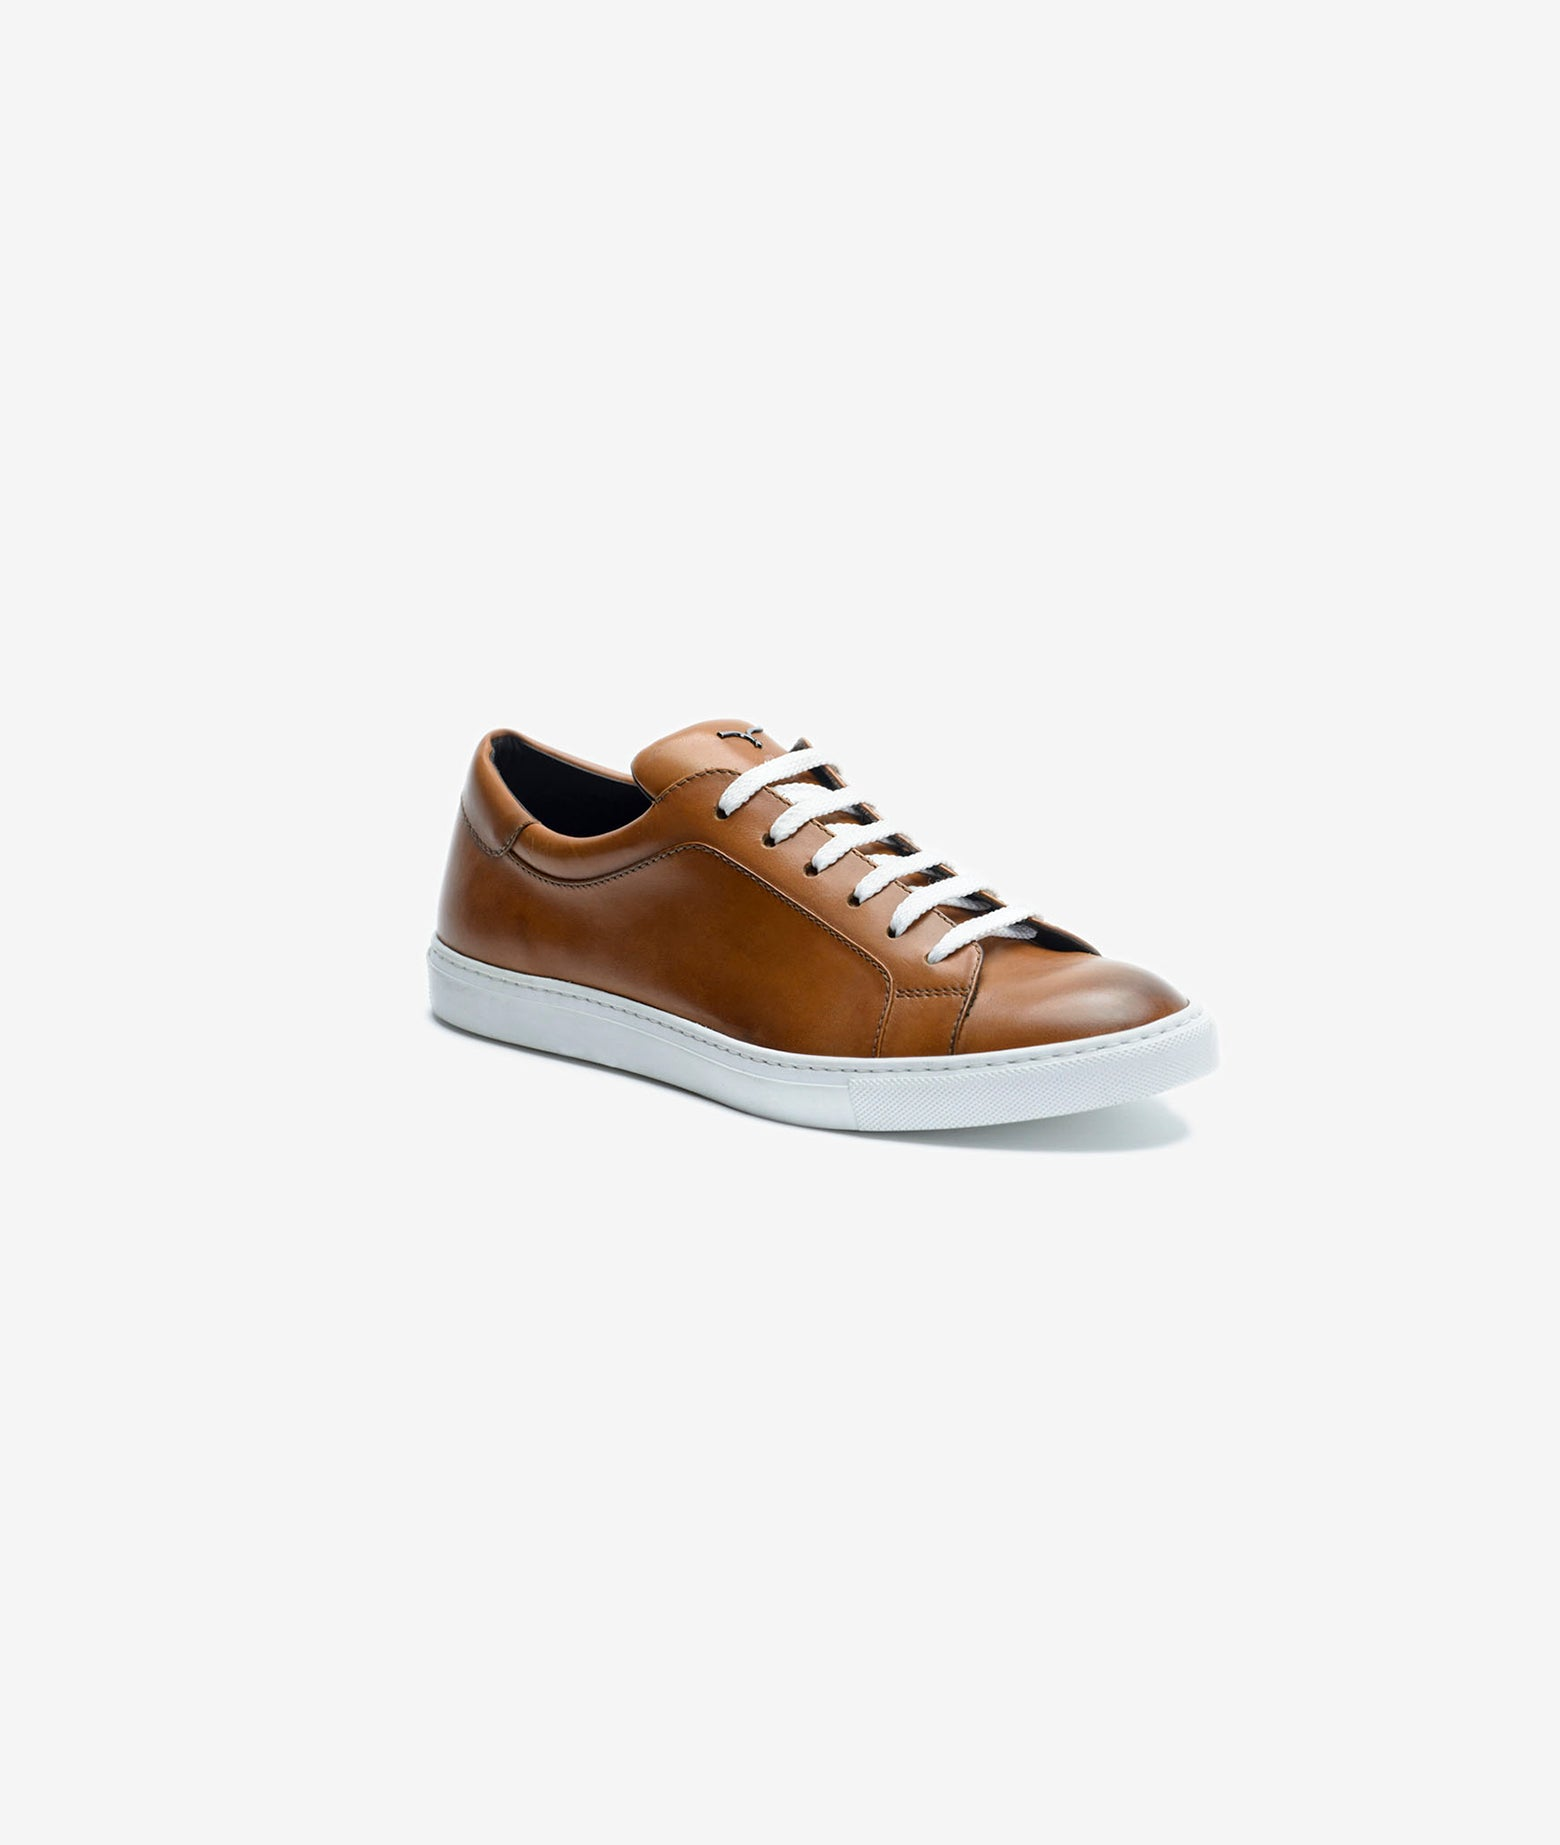 "Leather Sneaker ""Birmingham"""